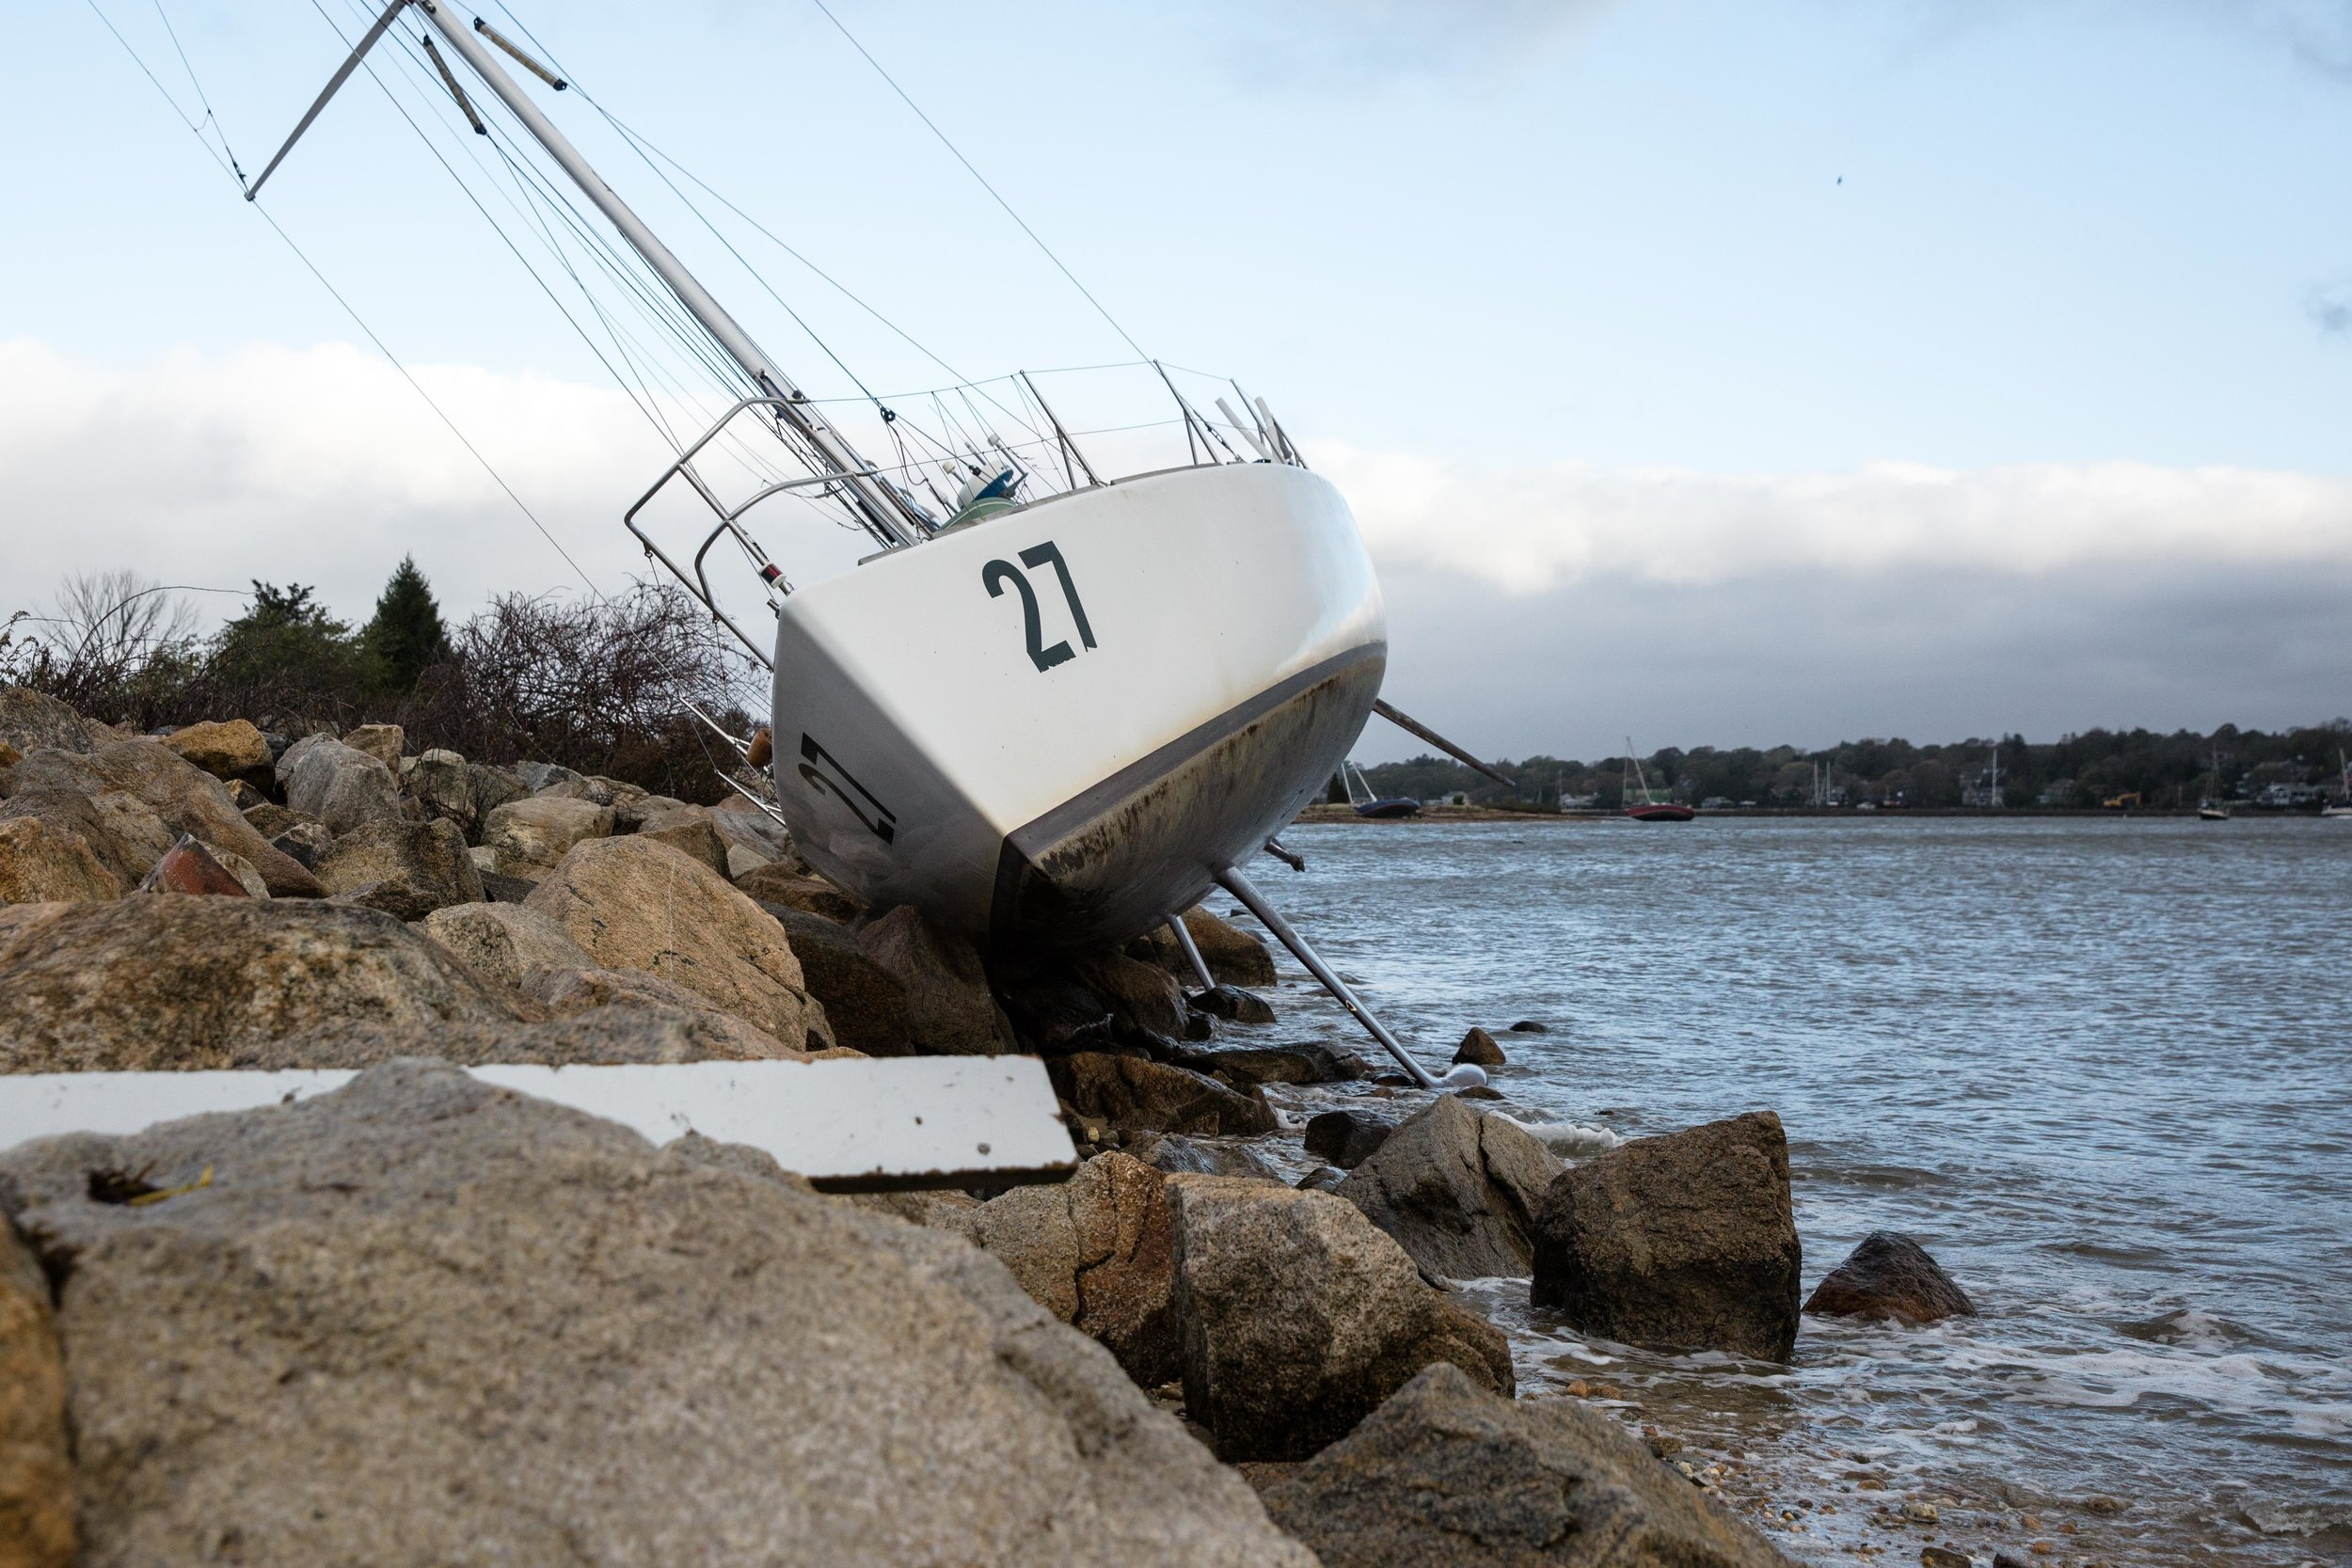 A sailboat rests on the rocks near Smithneck Road.